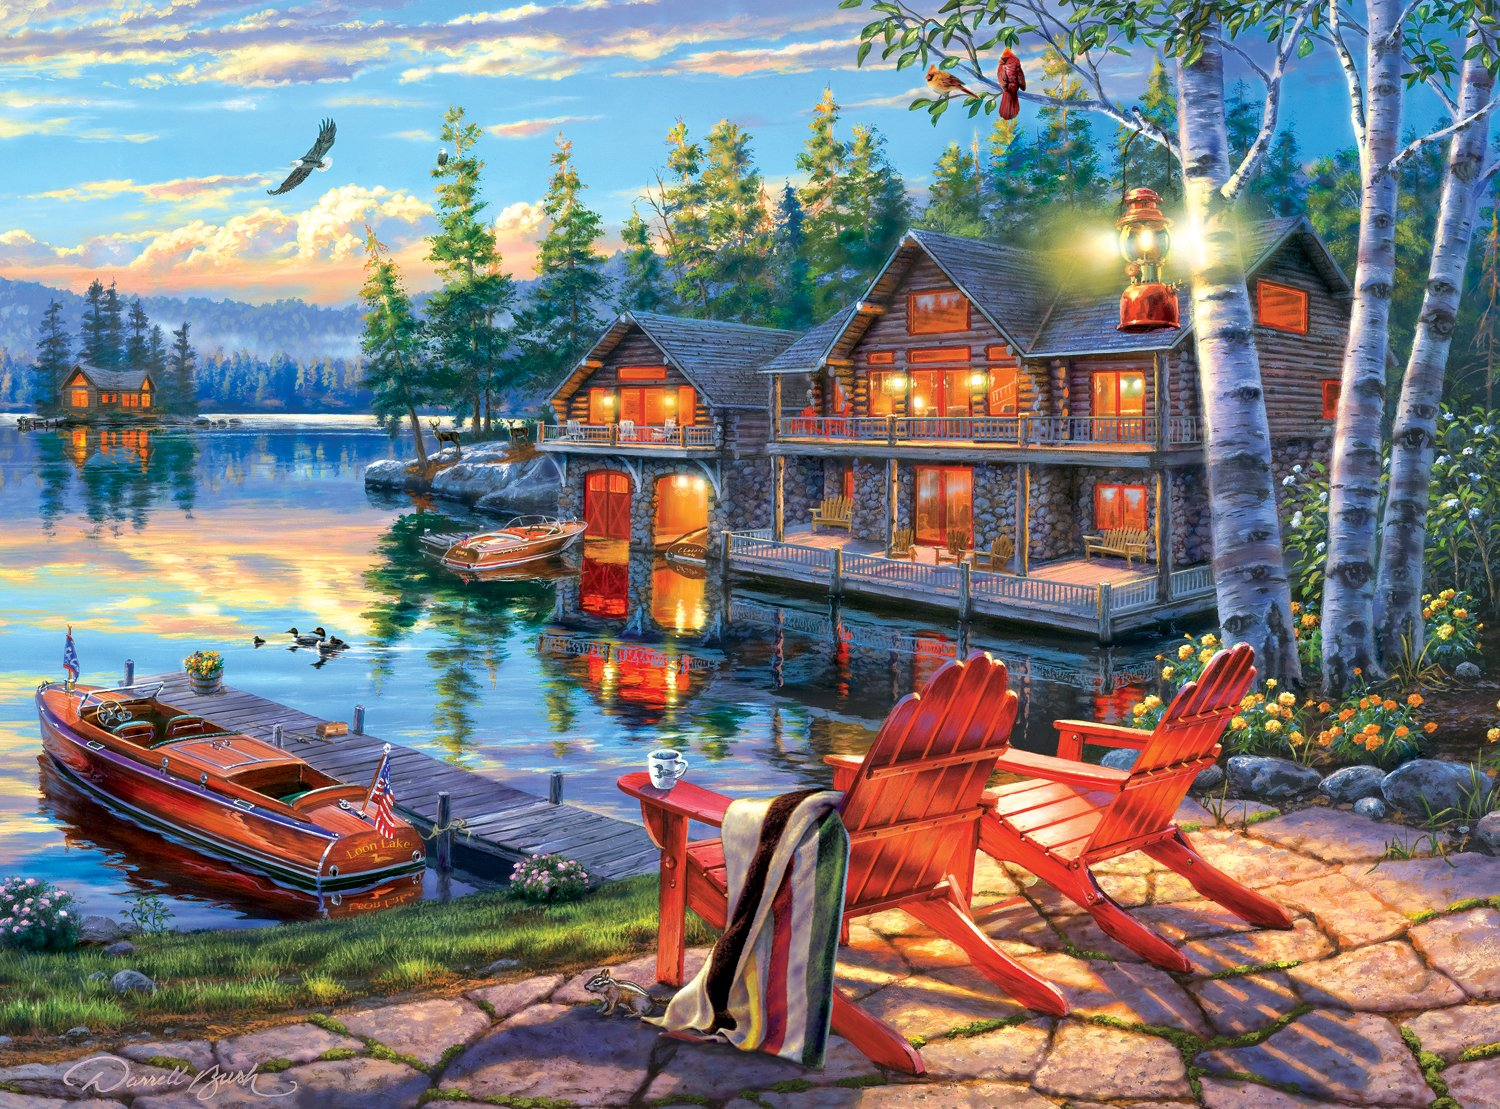 Buffalo Games - Darrell Bush - Loon Lake - 1000 Piece Jigsaw Puzzle